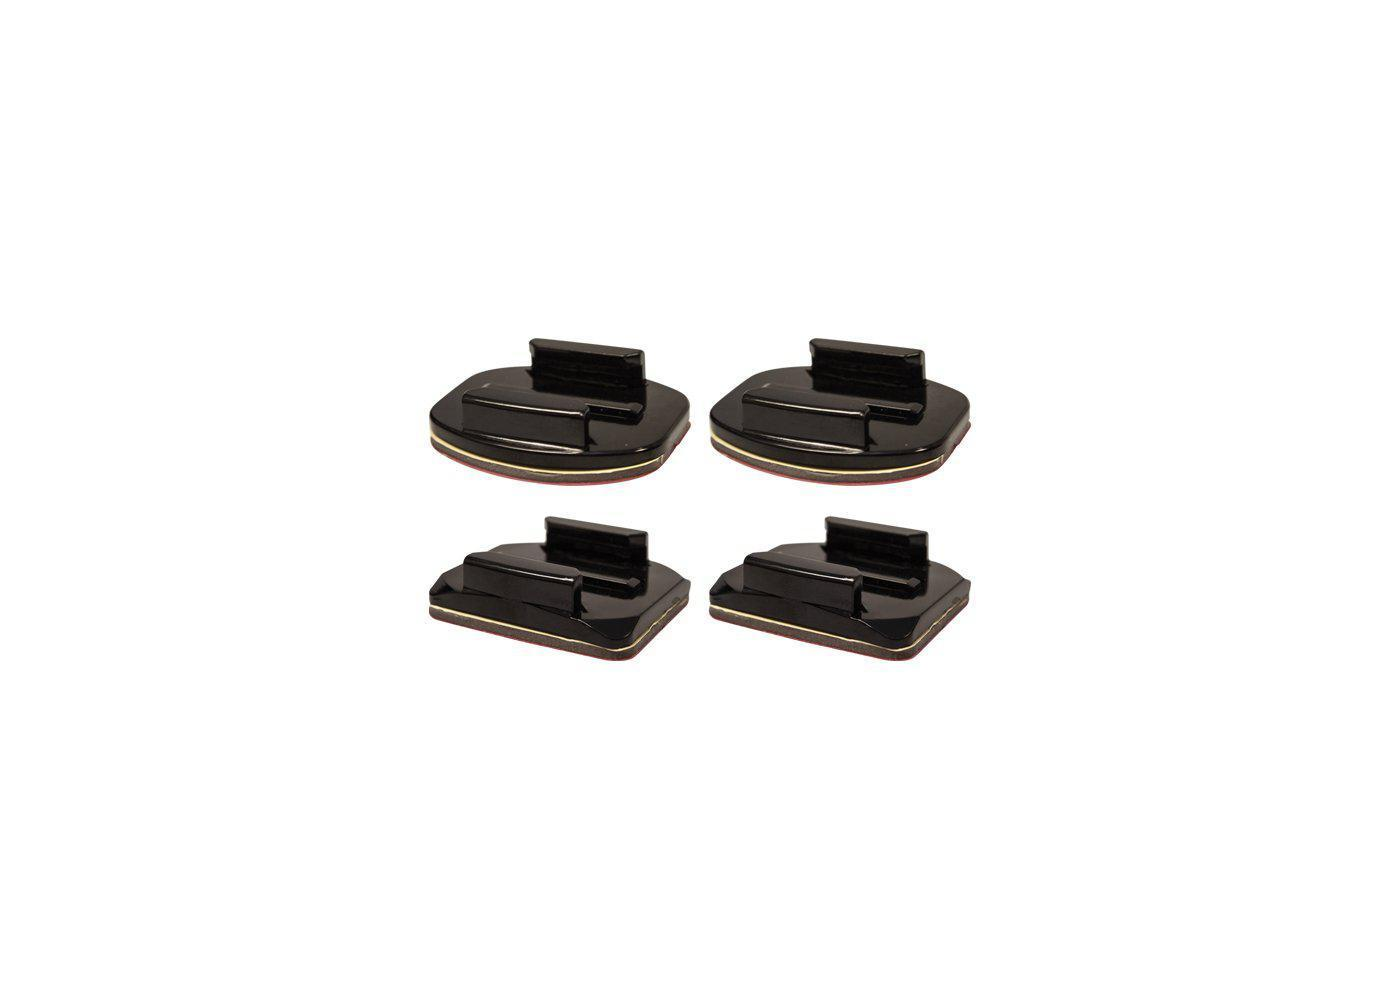 Flat and Curved Adhesive Mounts Package - cobra.com